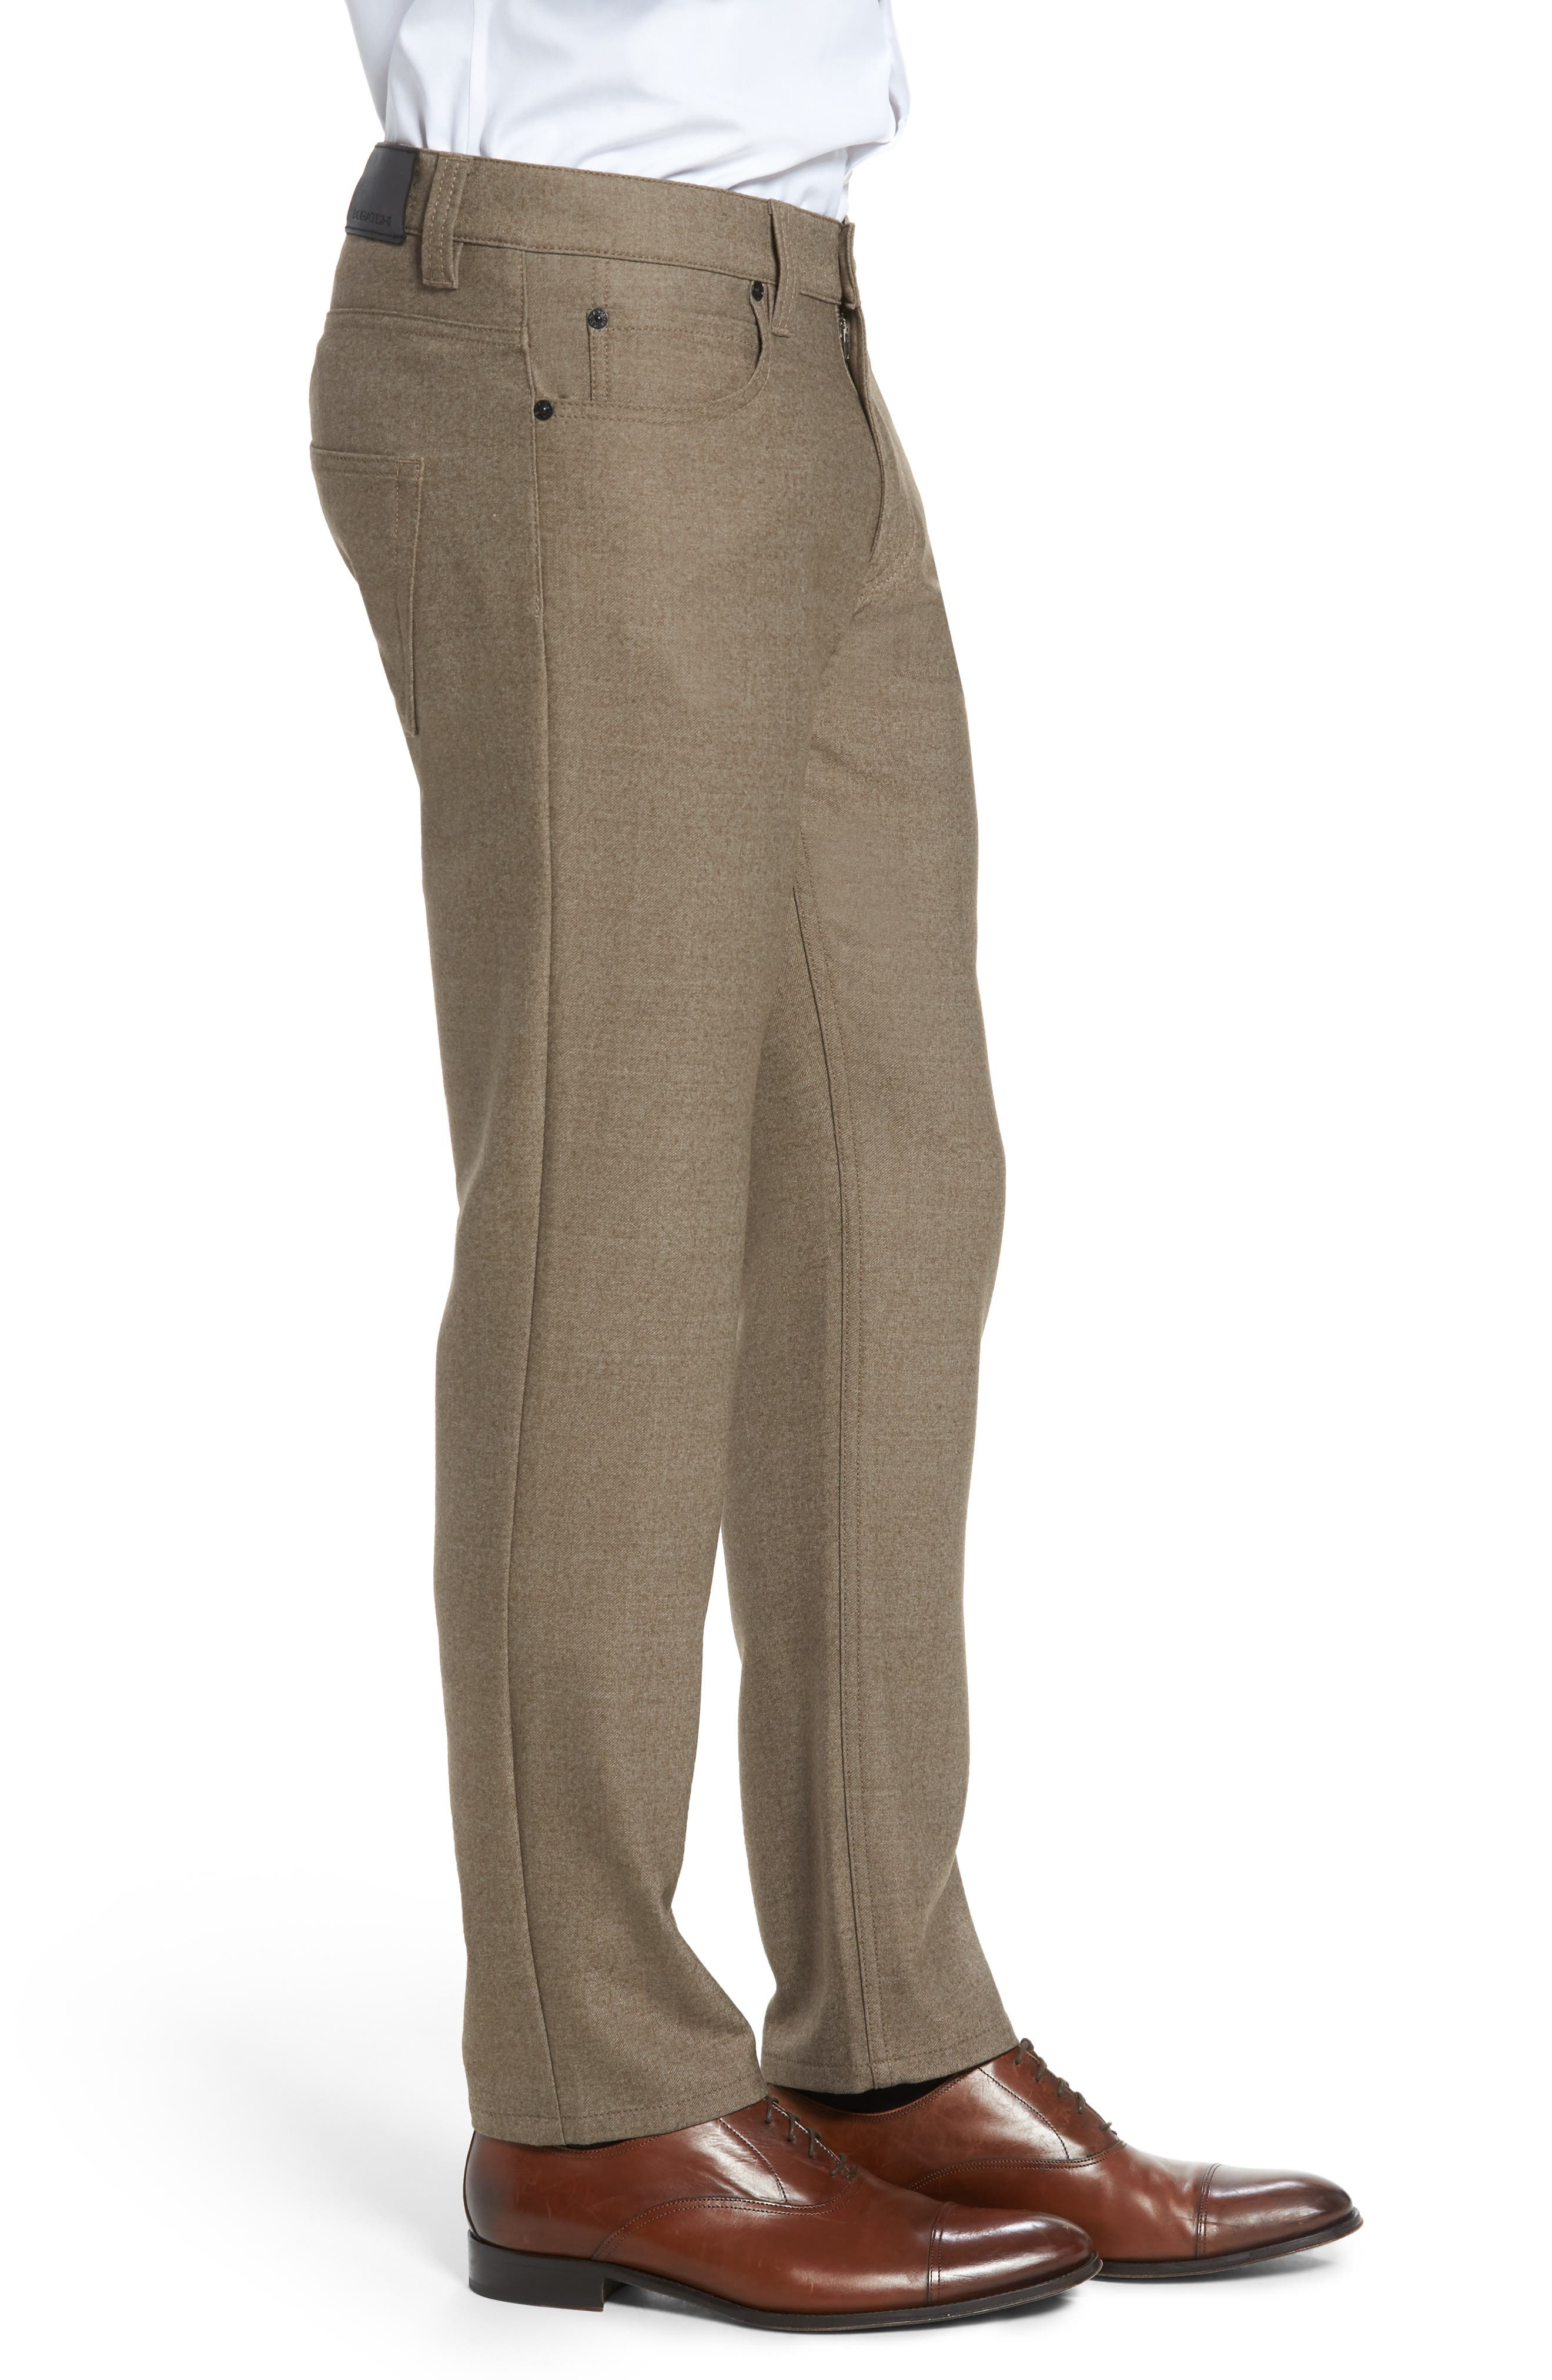 Wool Blend Pants,                             Alternate thumbnail 3, color,                             208